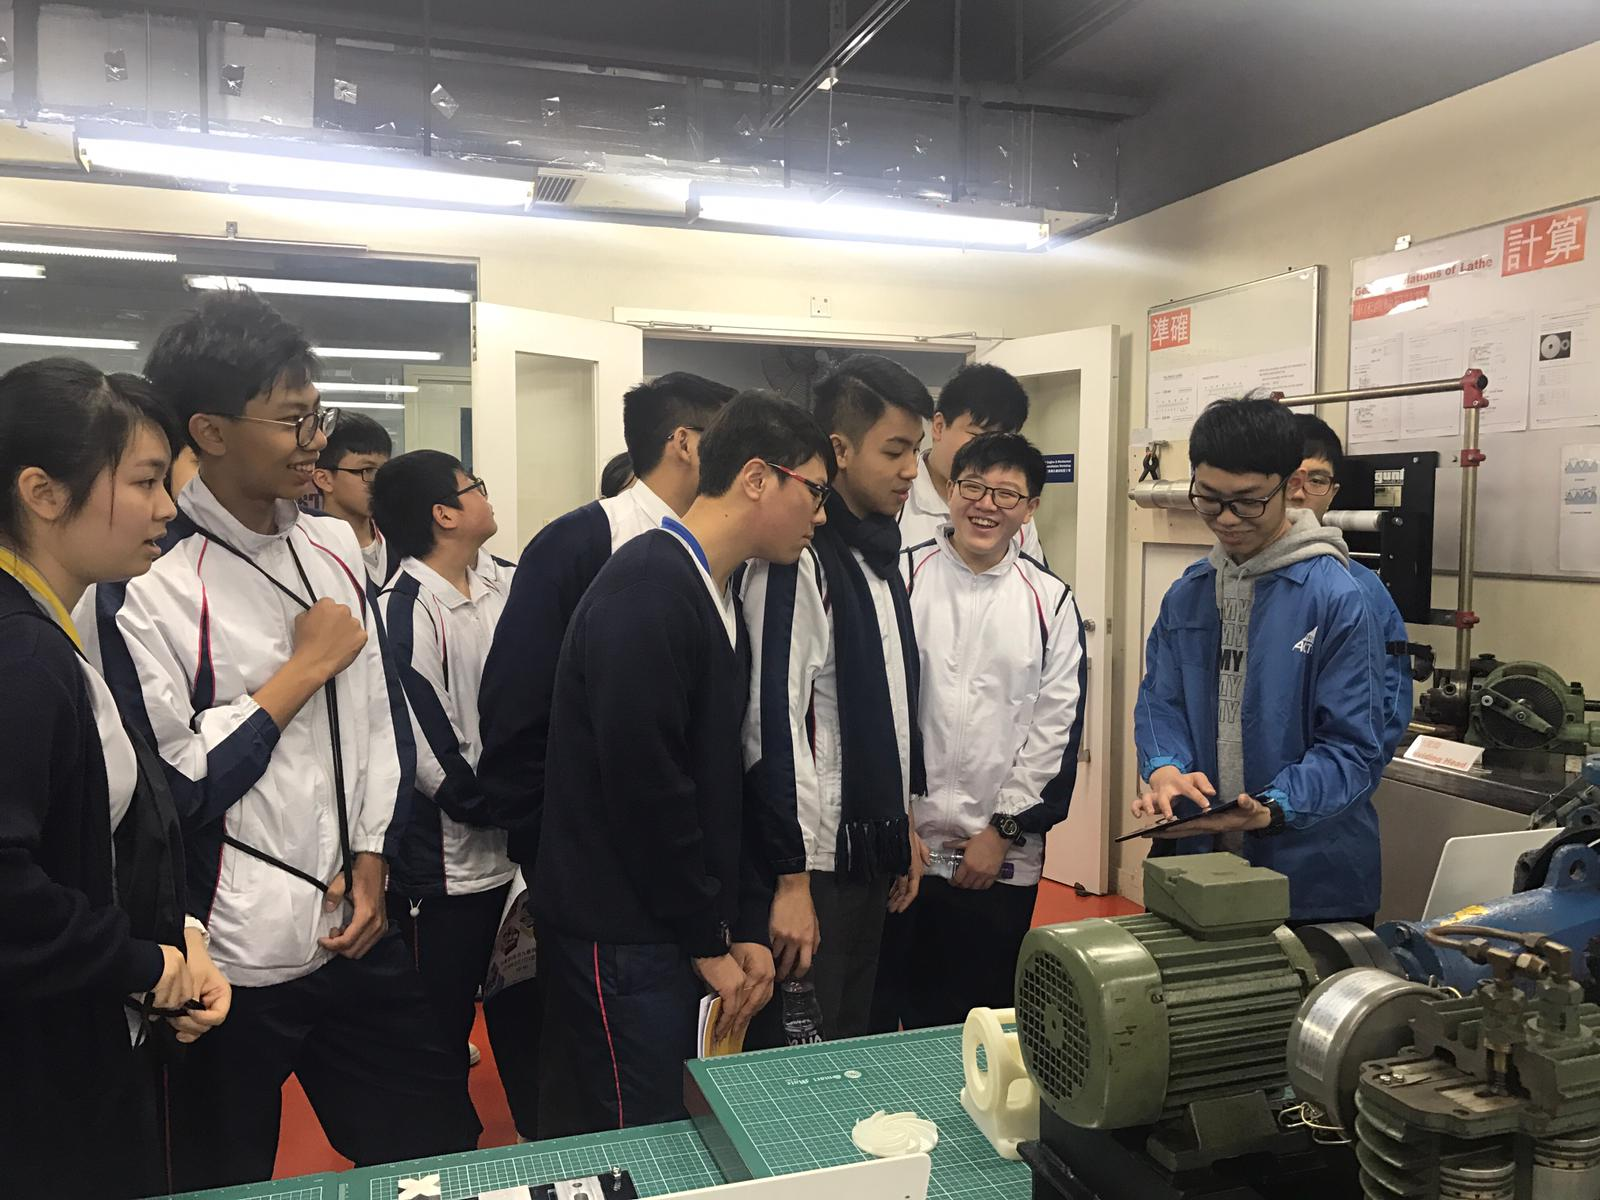 Student helpers of Engineering are showing some demonstration to the students.